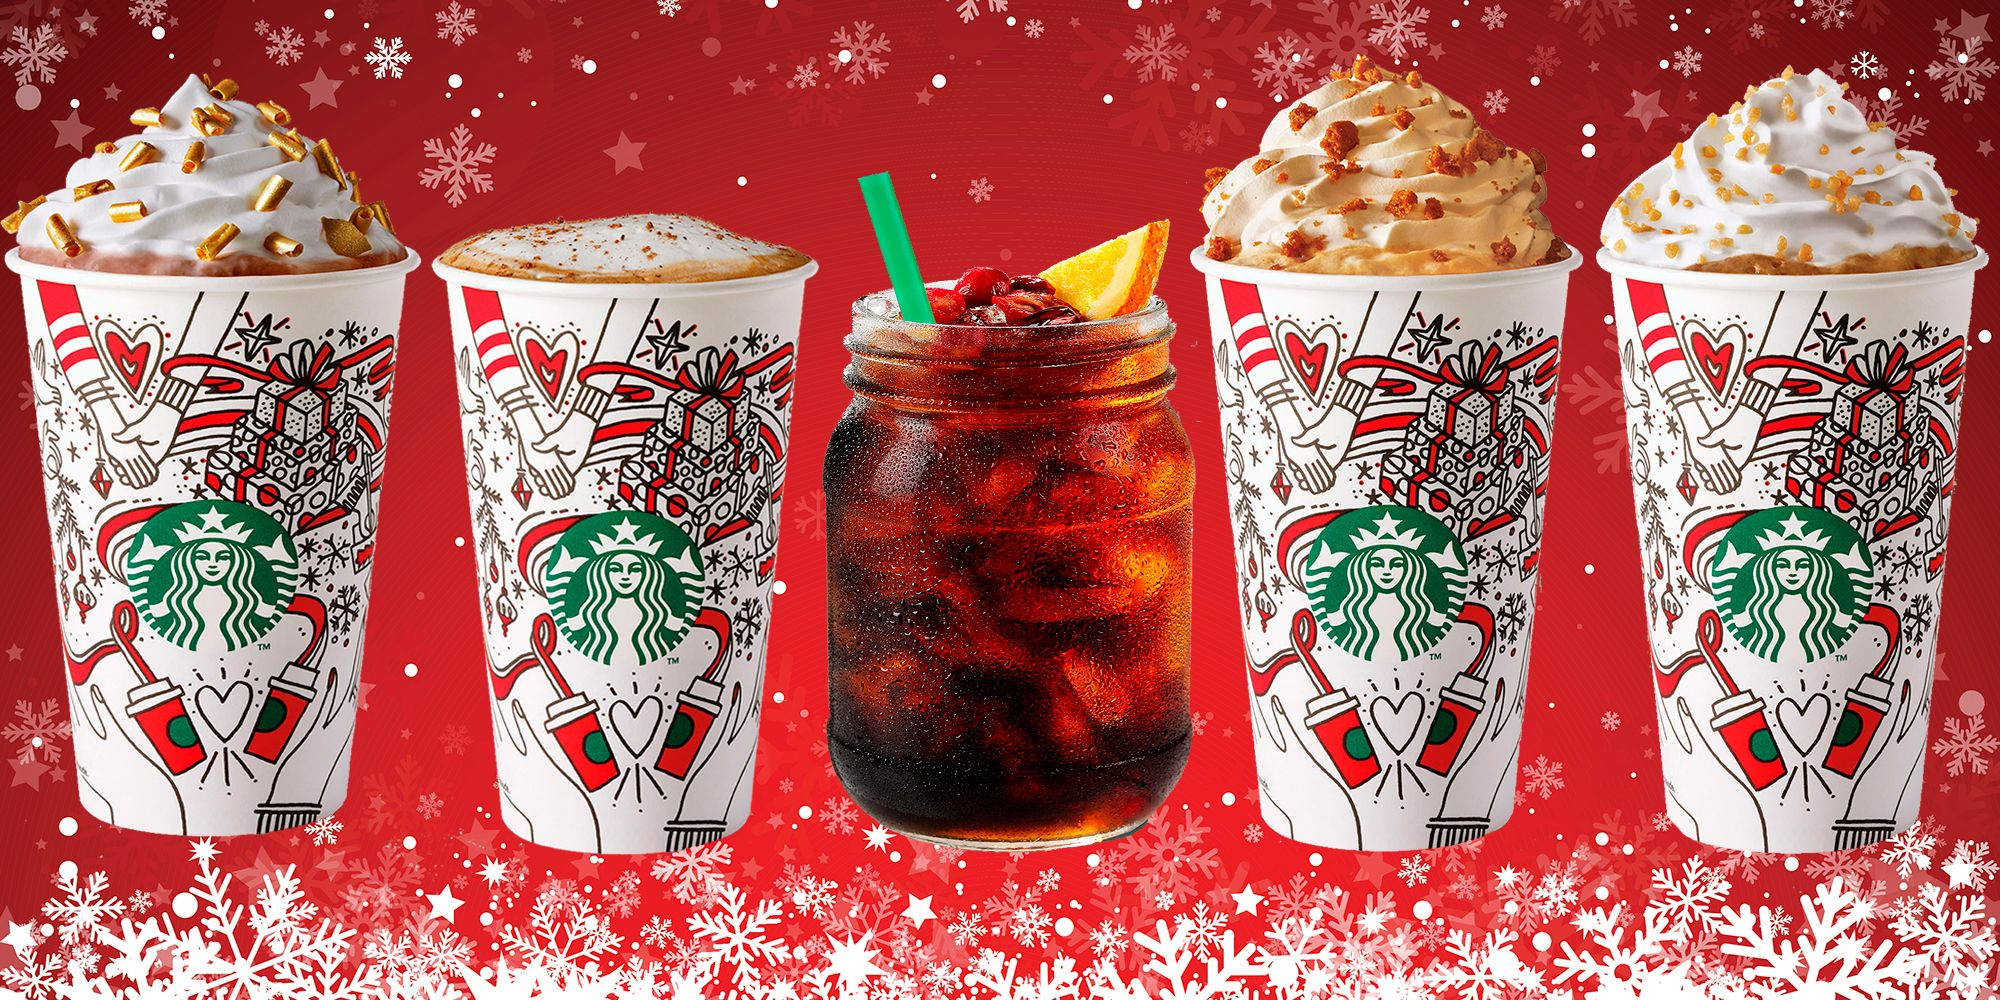 Starbucks' Christmas drinks ranked by